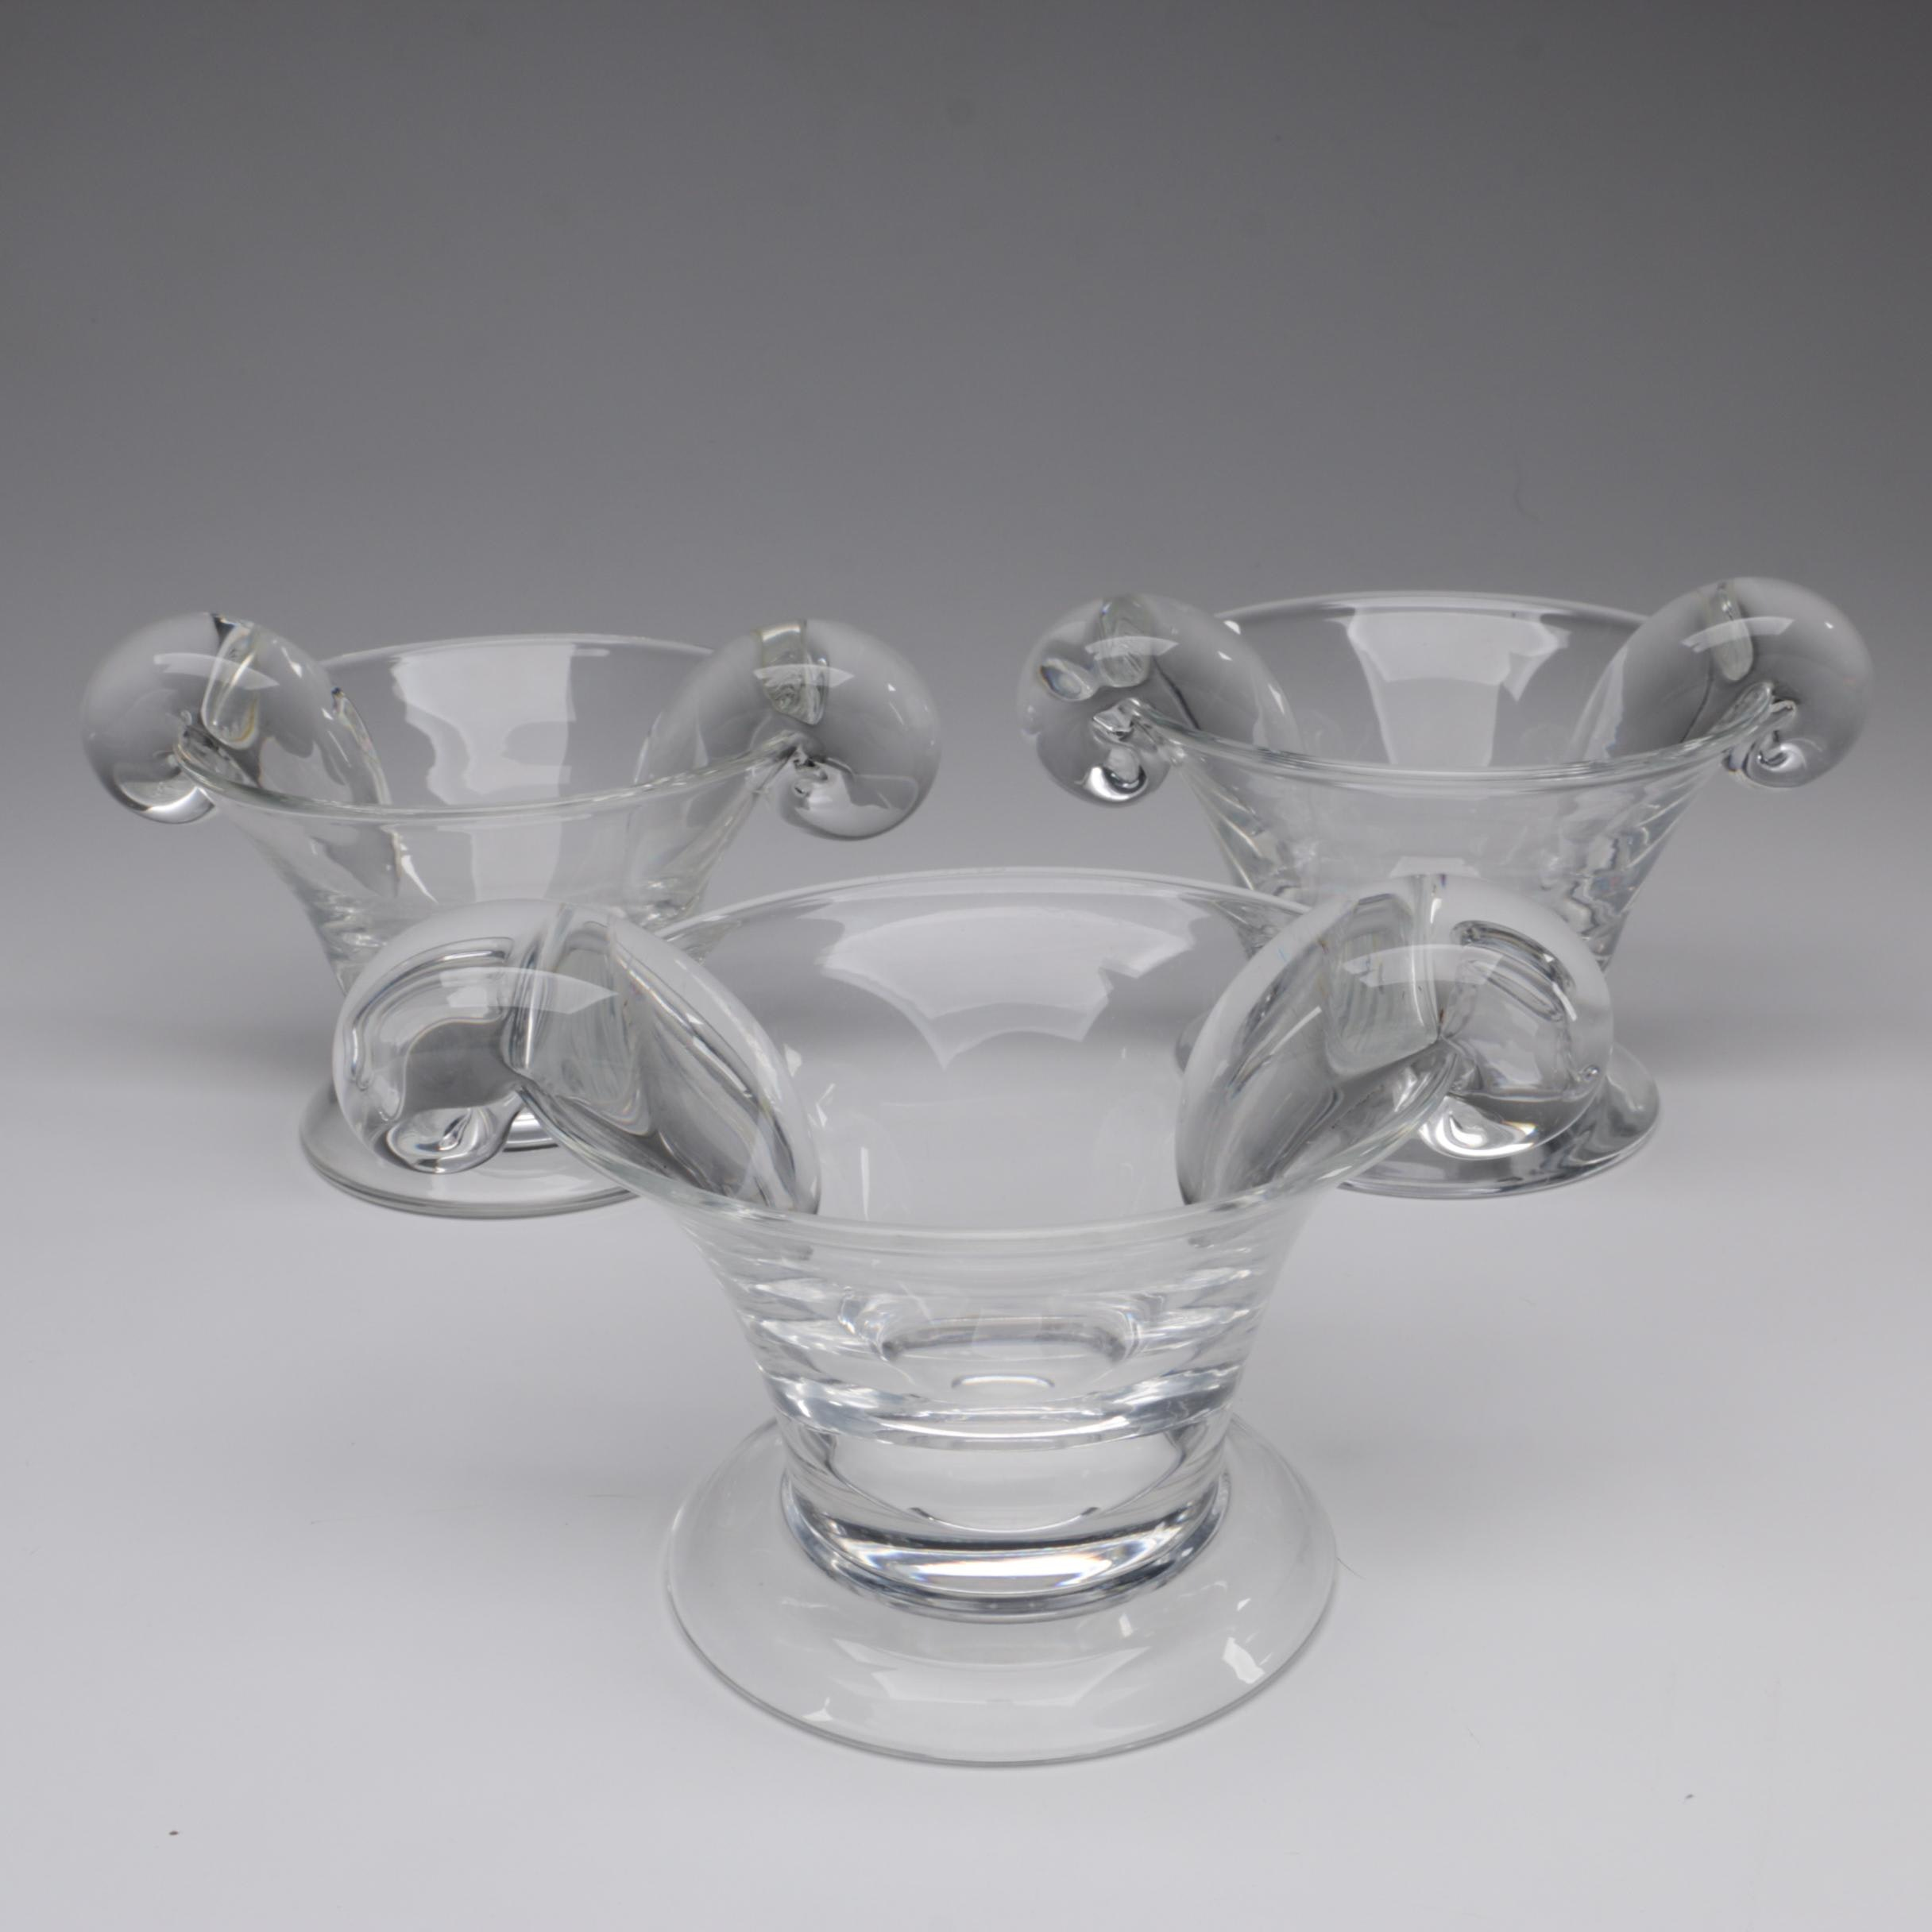 Steuben Art Glass Original Design Olive Dishes with Scroll Handles, Circa 1937